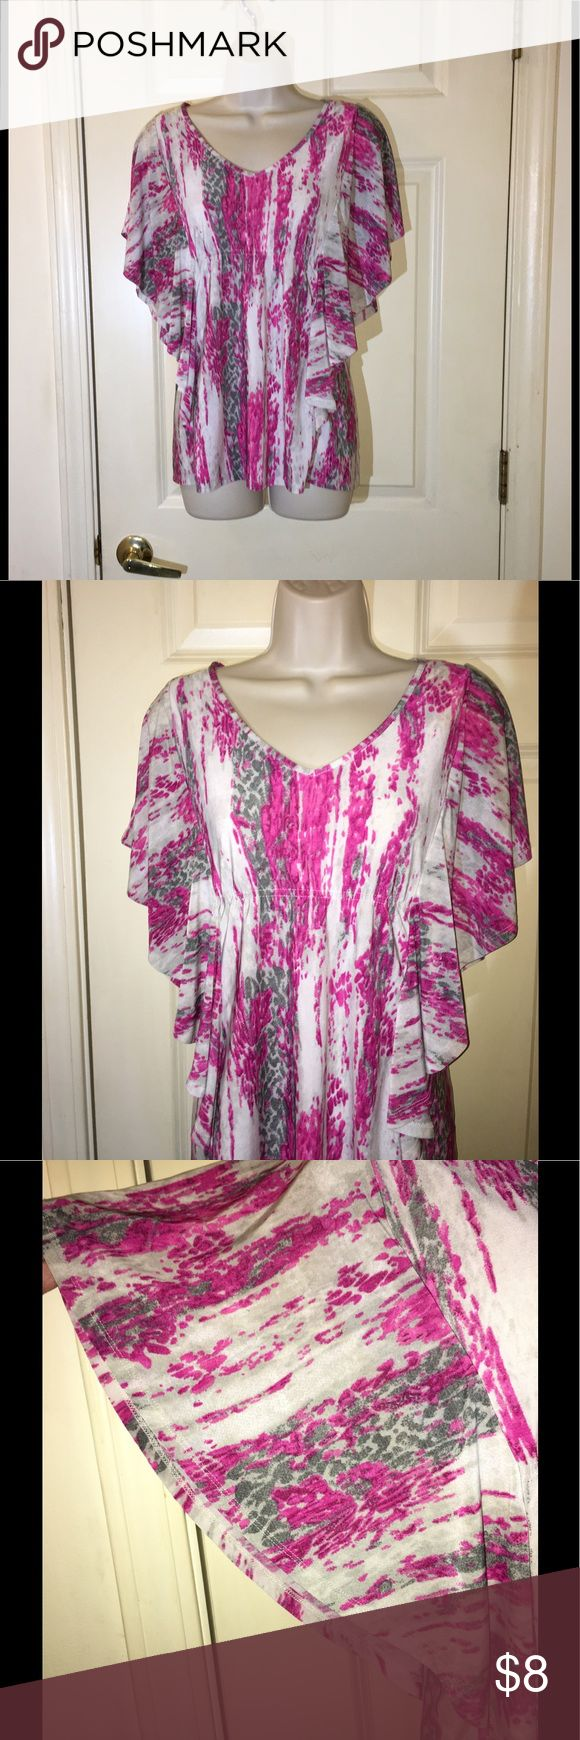 Isabella Rodriguez Batwing Top Large Pink and grey print top.  Batwing style sleeves.  V-neck with slight gathering under bustline to create slimming effect of top.  Size large.  From Isabella Rodriguez.  Excellent condition.  Important:   All items are freshly laundered as applicable prior to shipping (new items and shoes excluded).  Not all my items are from pet/smoke free homes.  Price is reduced to reflect this!   Thank you for looking! isabella rodriguez Tops Blouses